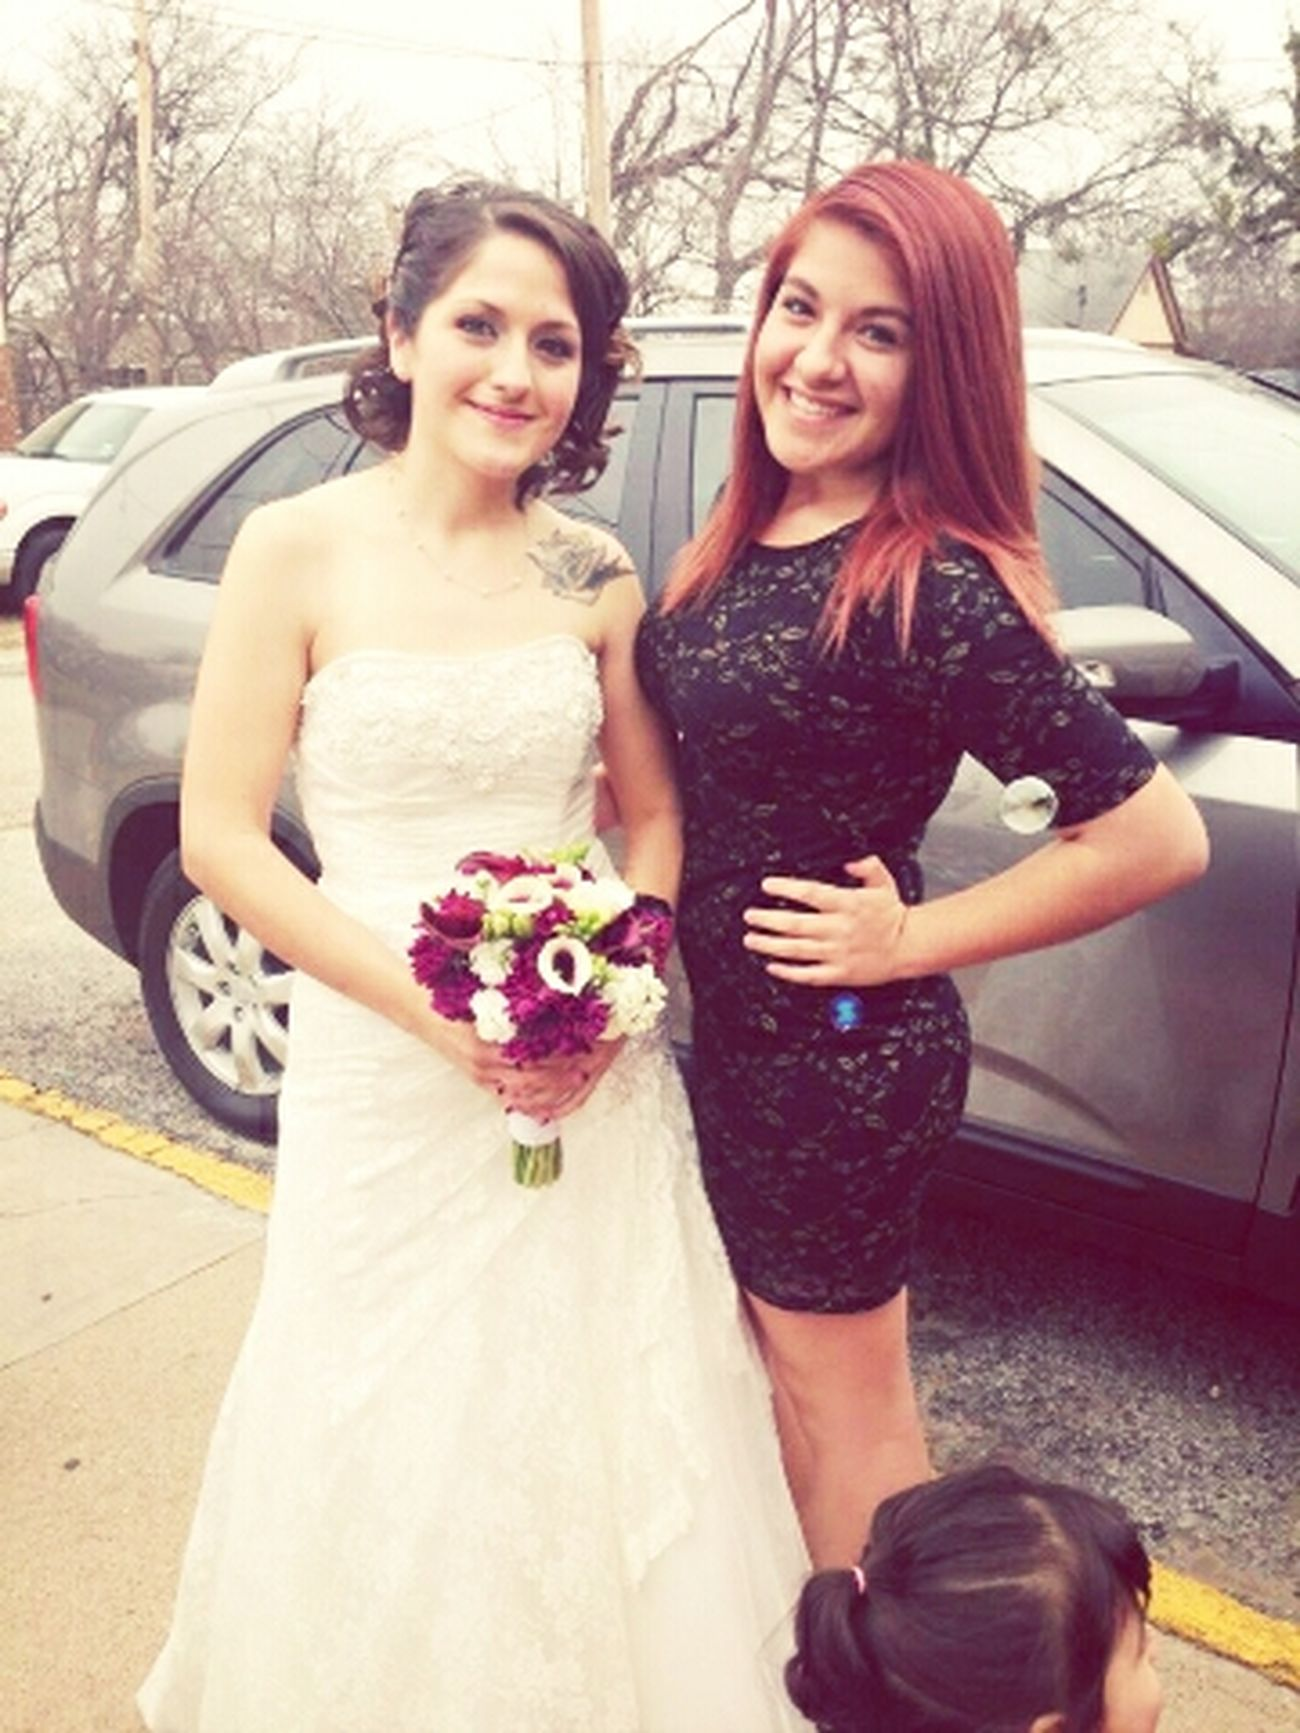 She Looked Amazinggg! <3